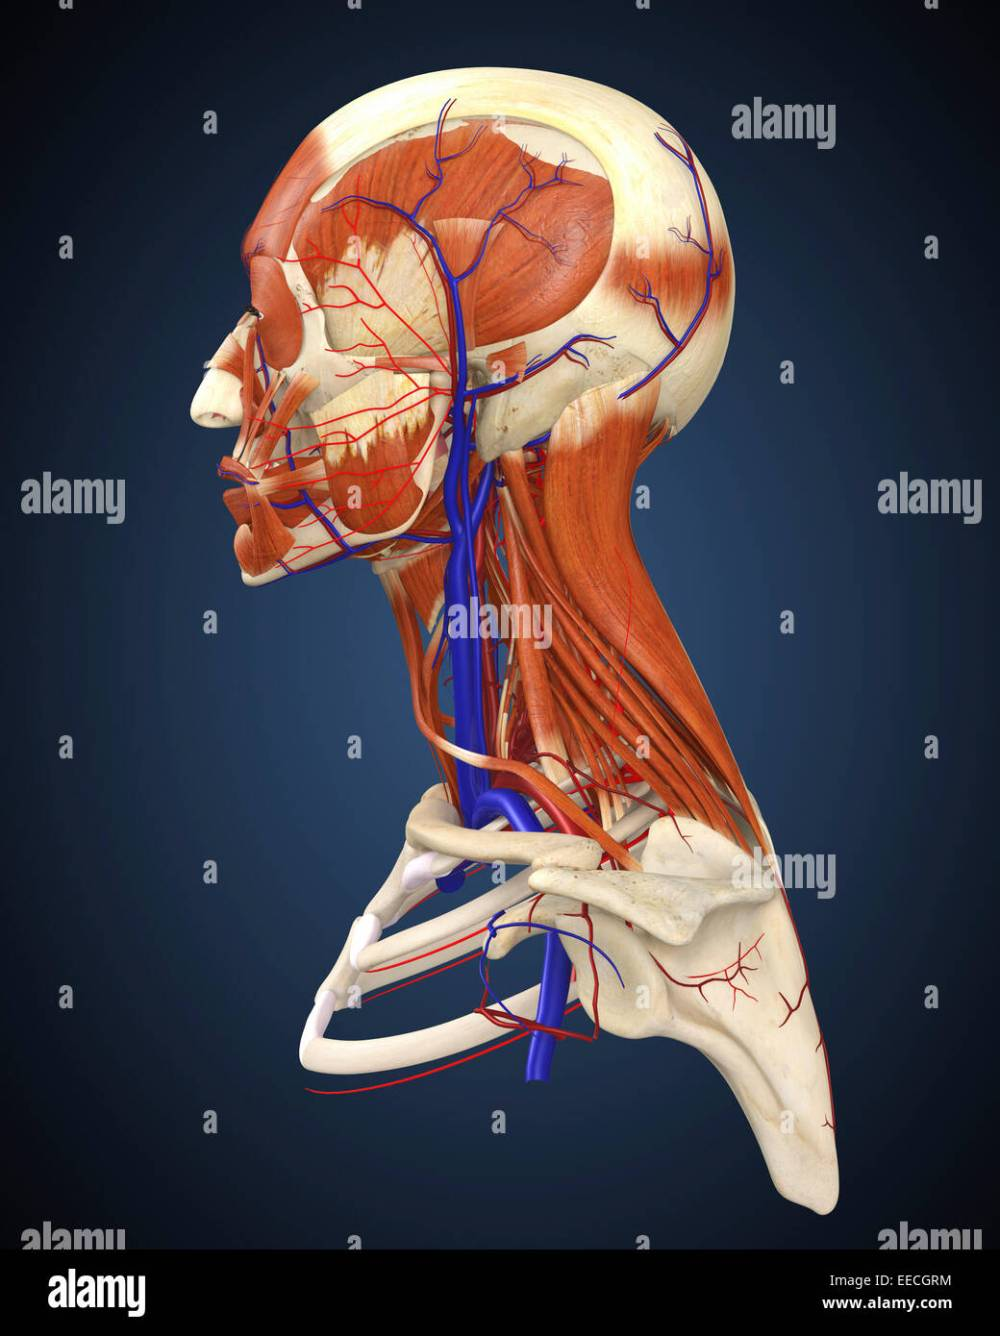 medium resolution of side view of human face with bones muscles and circulatory system